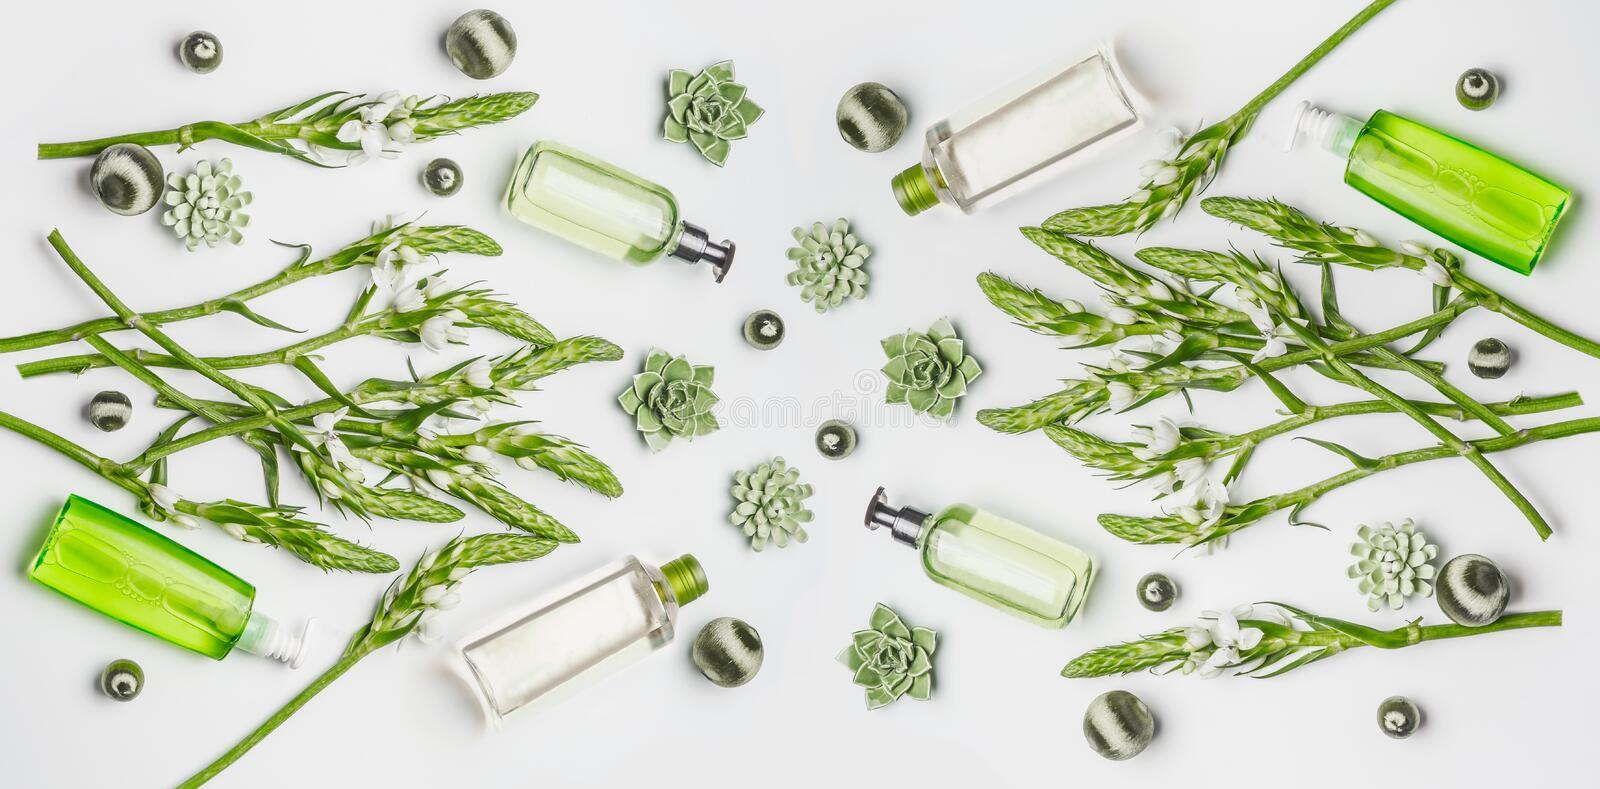 Green herbal vegan natural cosmetic setting with bottles of skin care products with branding copy space, herbs and flowers stock photography